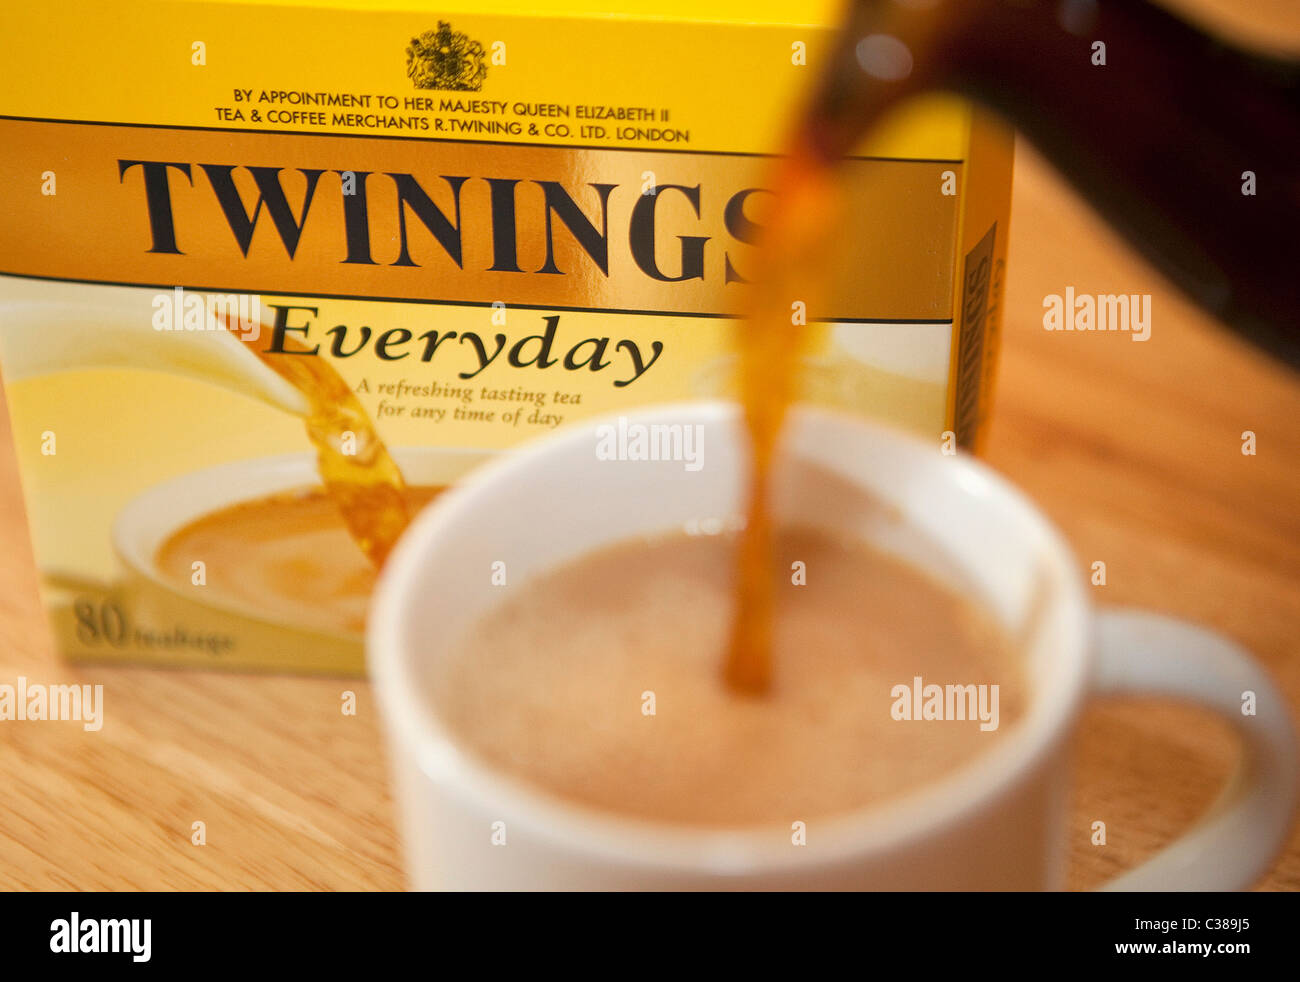 Illustrative image of Twinings Tea, an Associated British Foods brand. - Stock Image